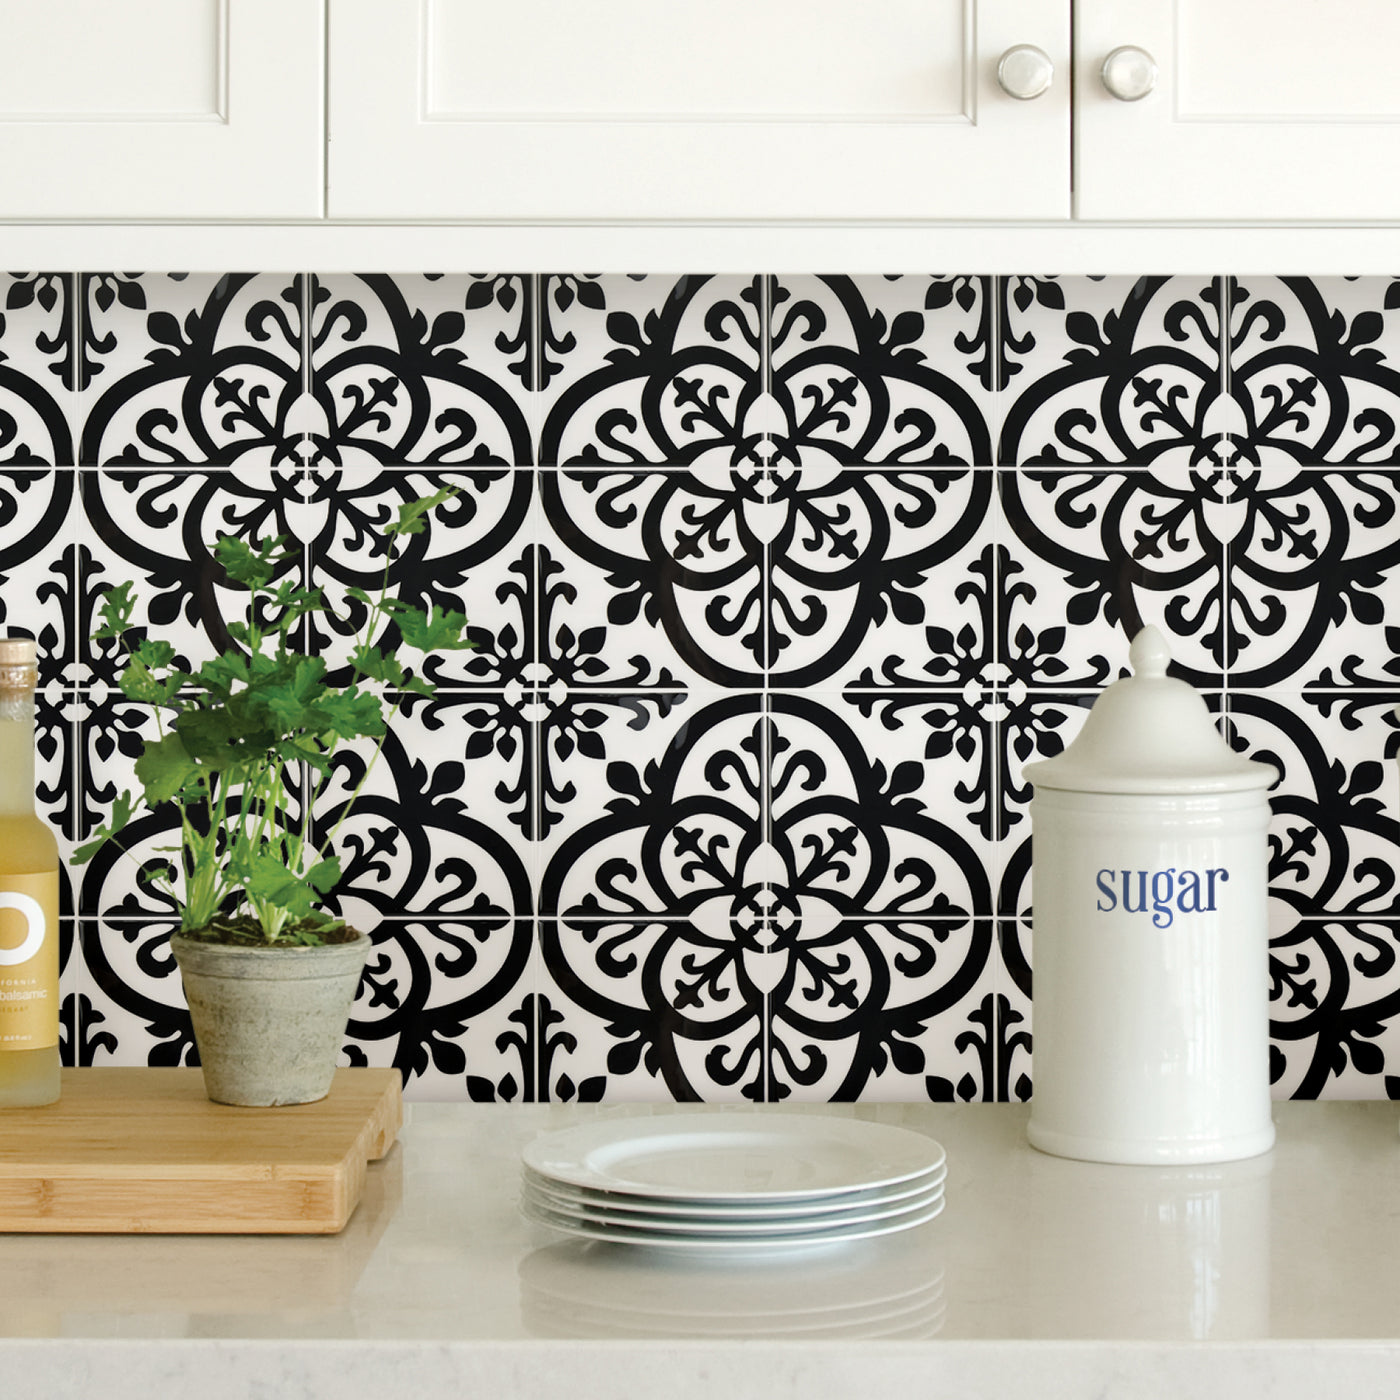 - Wallpops Avignon Black And White Peel And Stick Backsplash Tile